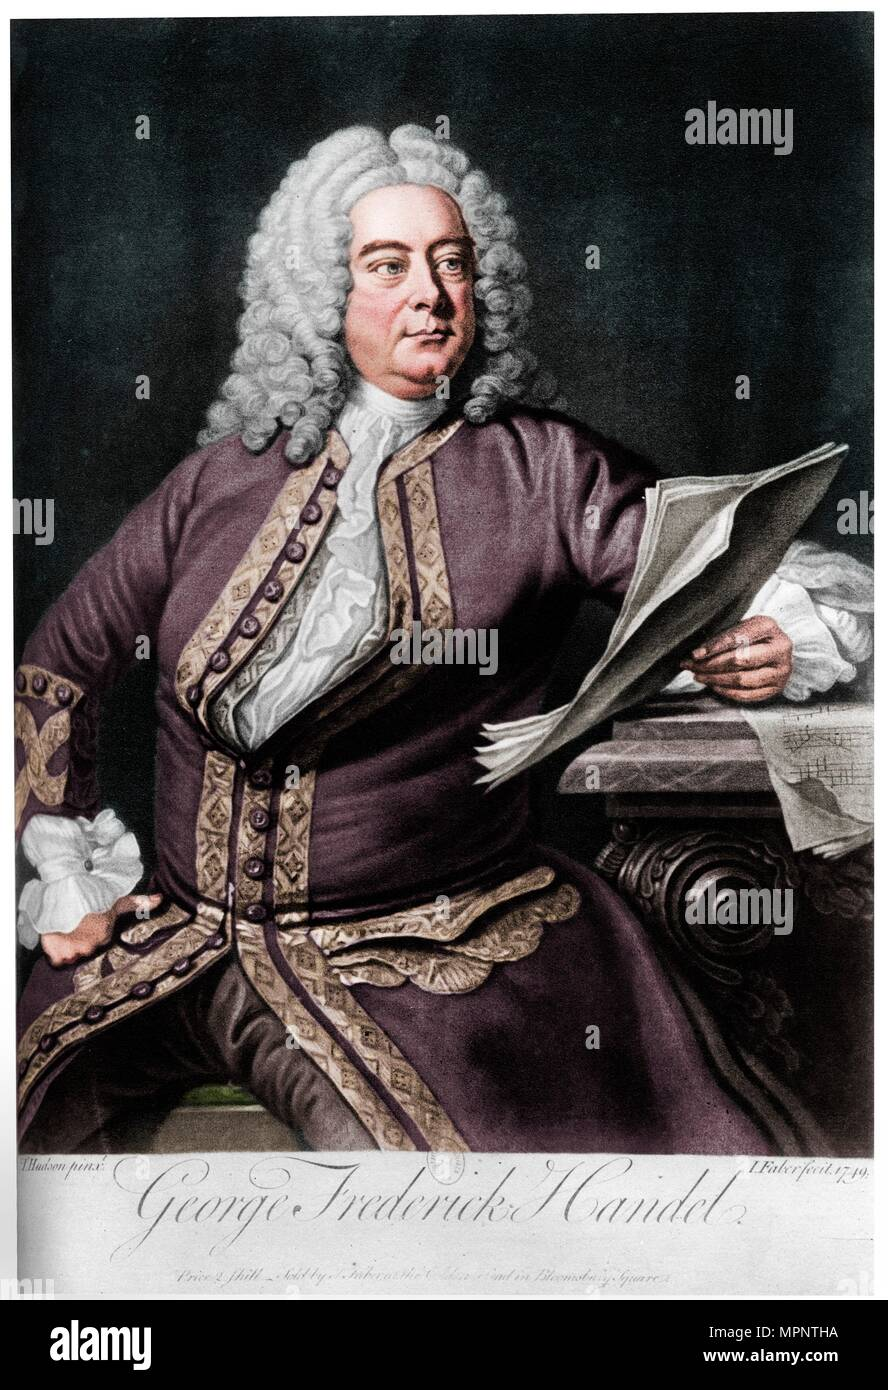 George Frideric Handel, German-born British Baroque composer, 1749. Artist: John Faber the Younger. - Stock Image